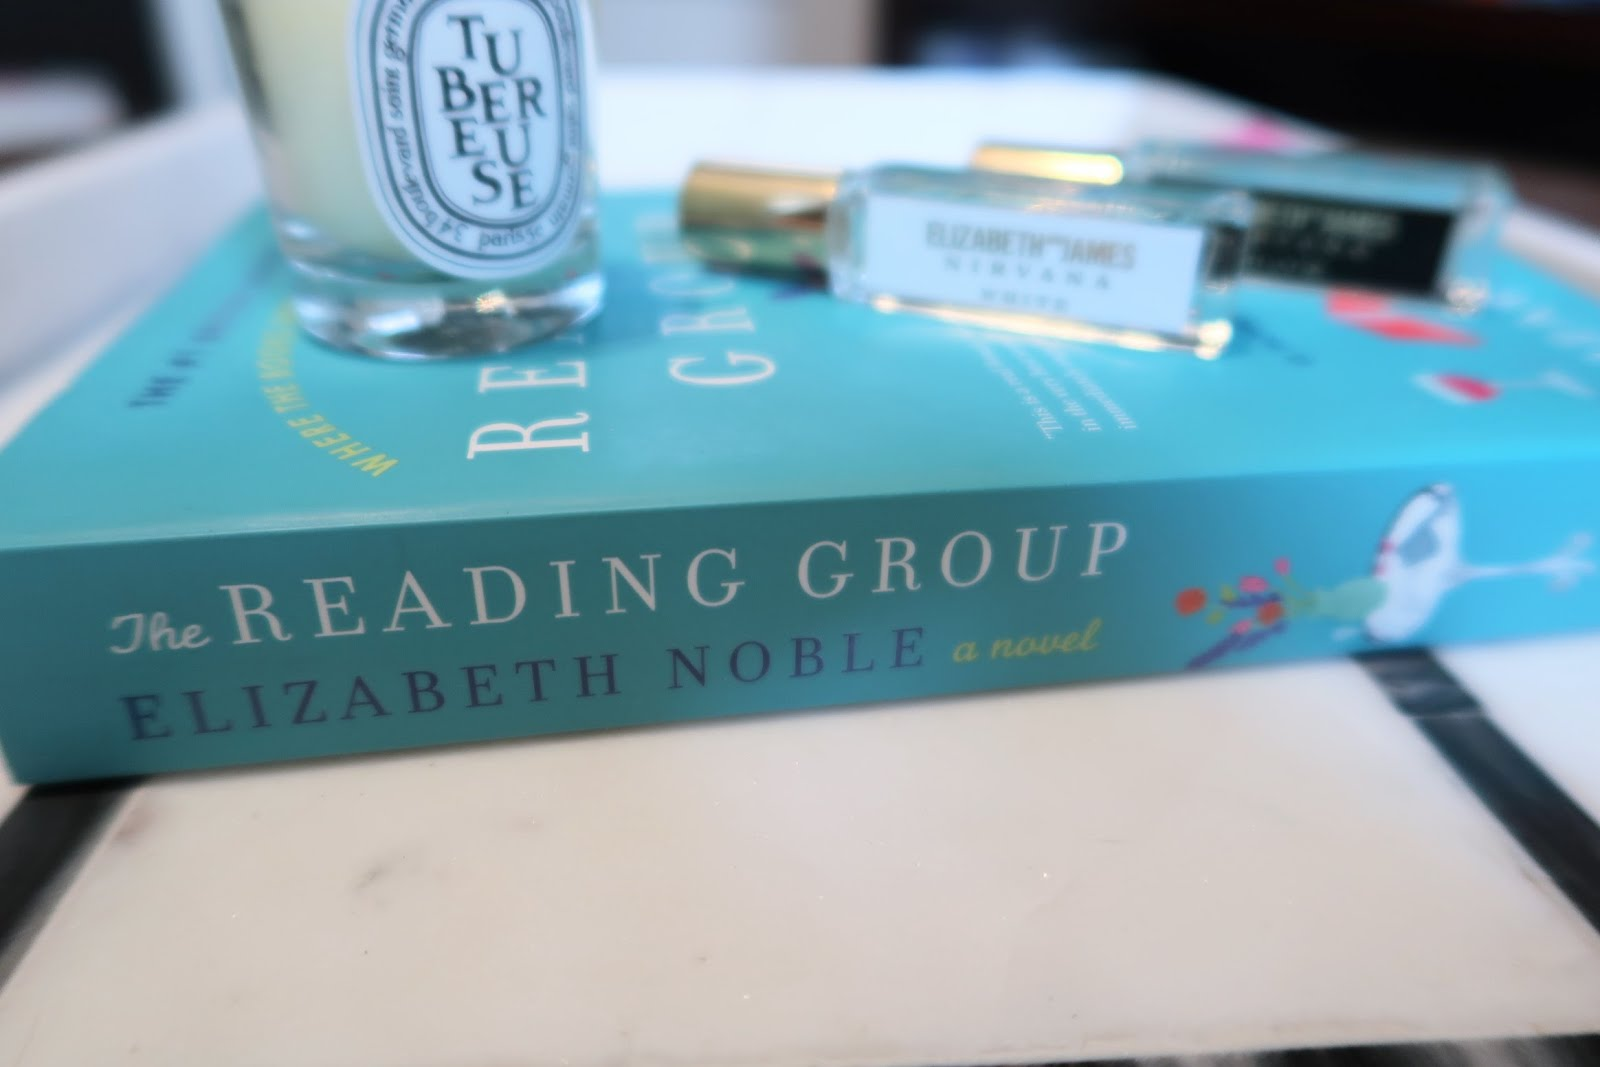 The Reading Group Elizabeth Noble book review candle perfume spine